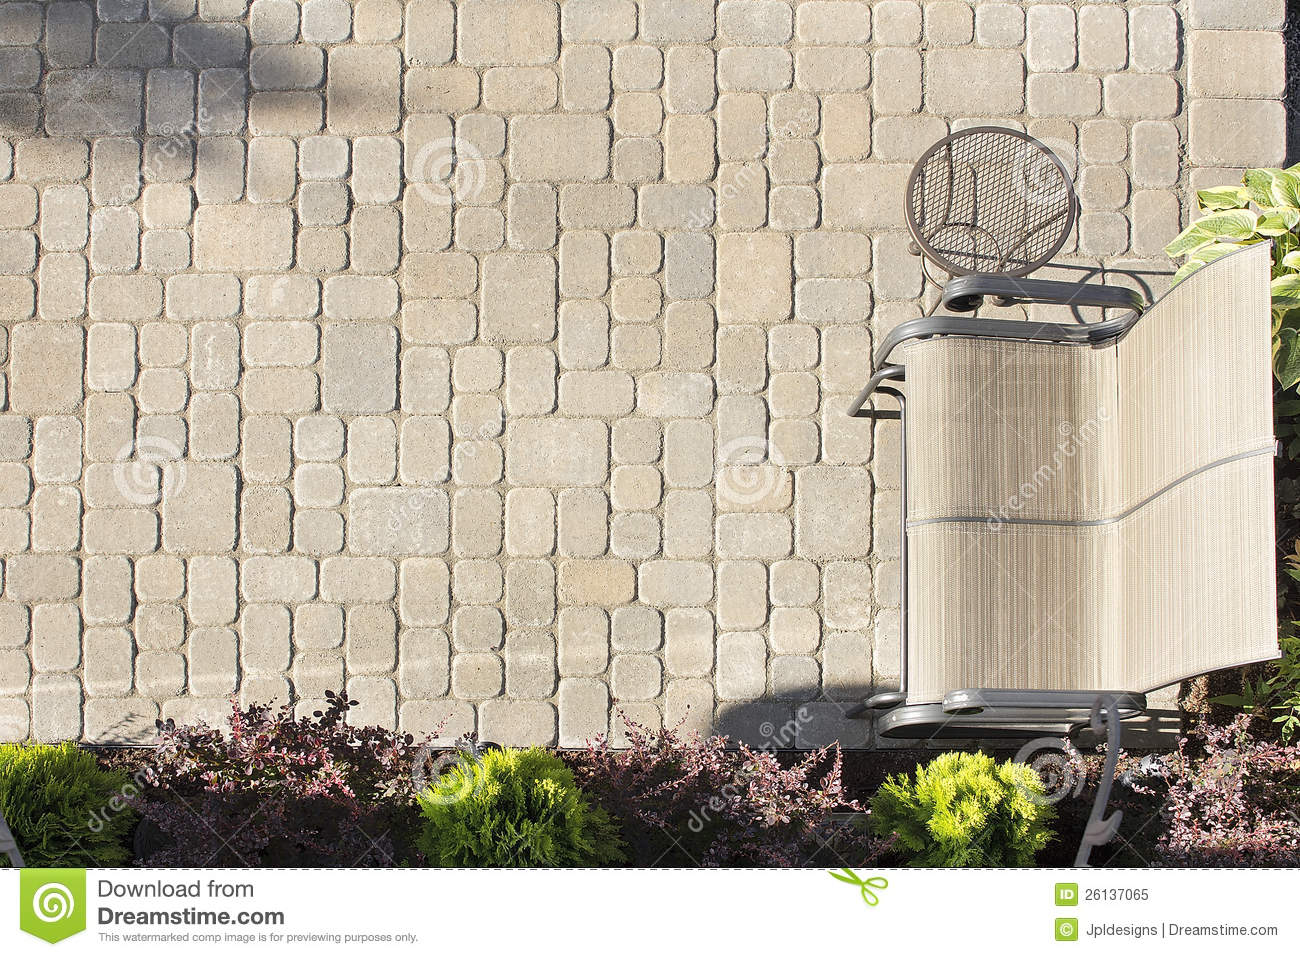 Aerial View Of Garden Paver Patio Stock Image  Image of